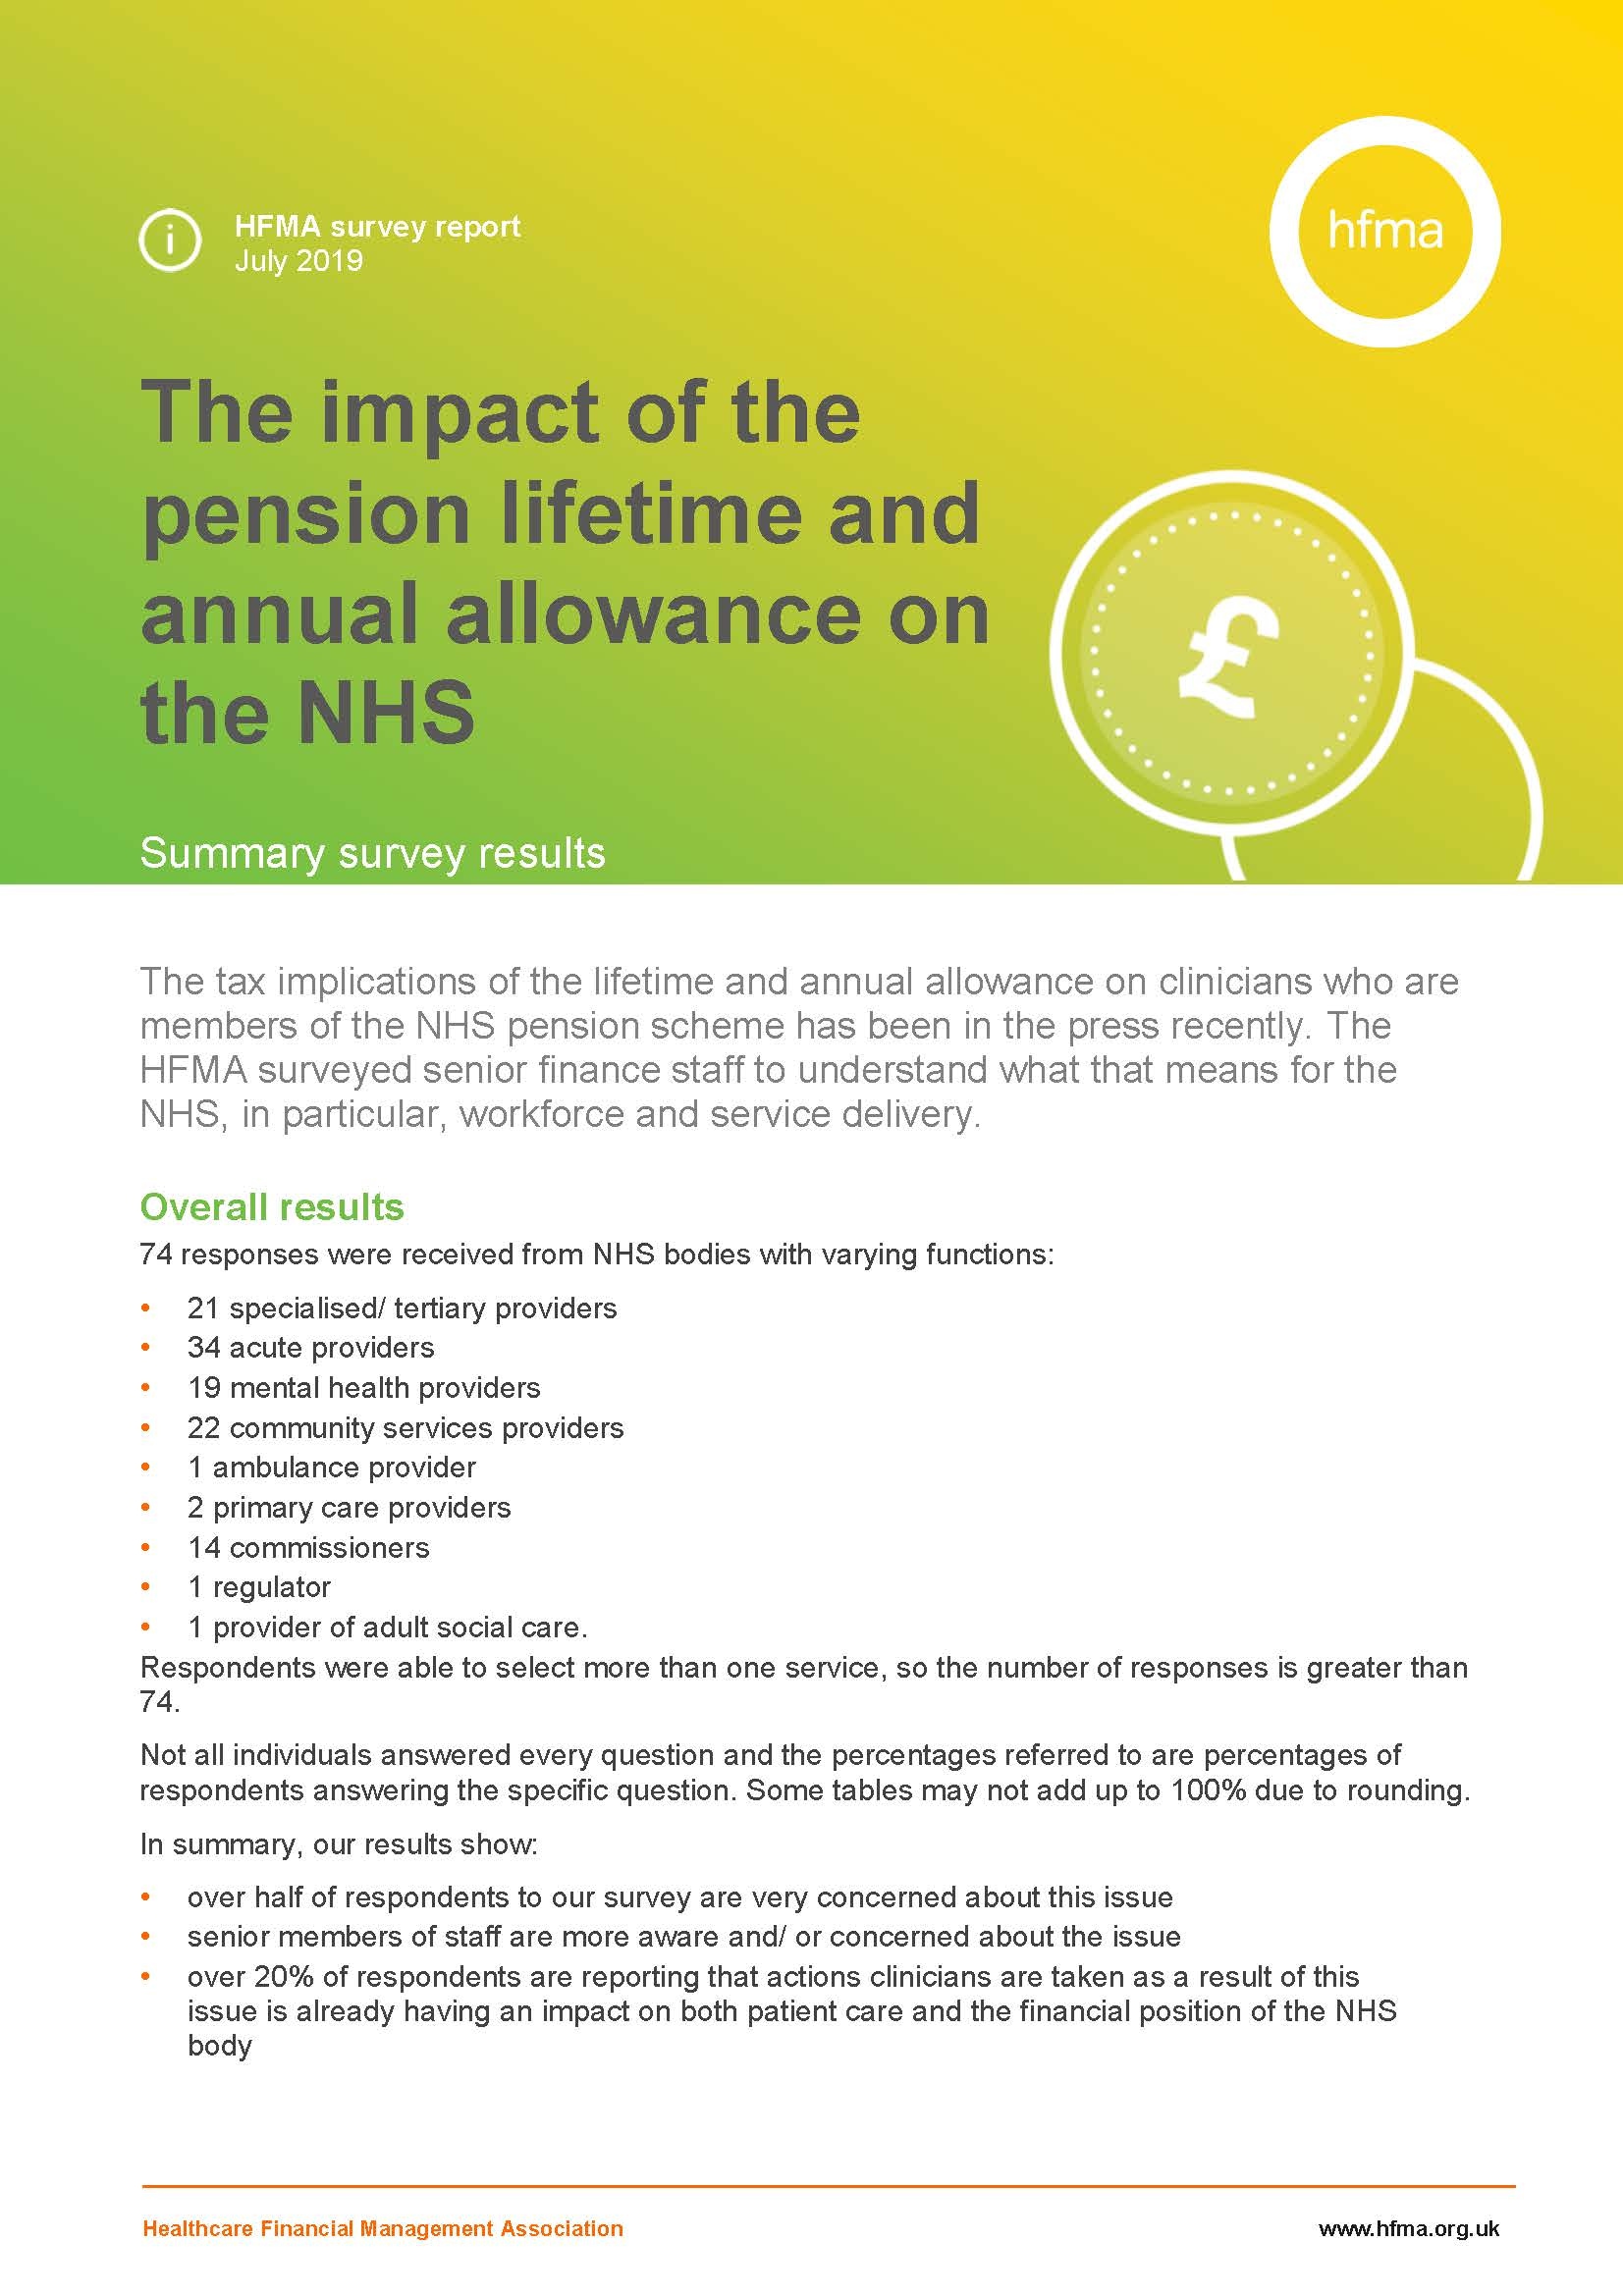 Survey results - impact of the pension lifetime and annual allowance on the NHS